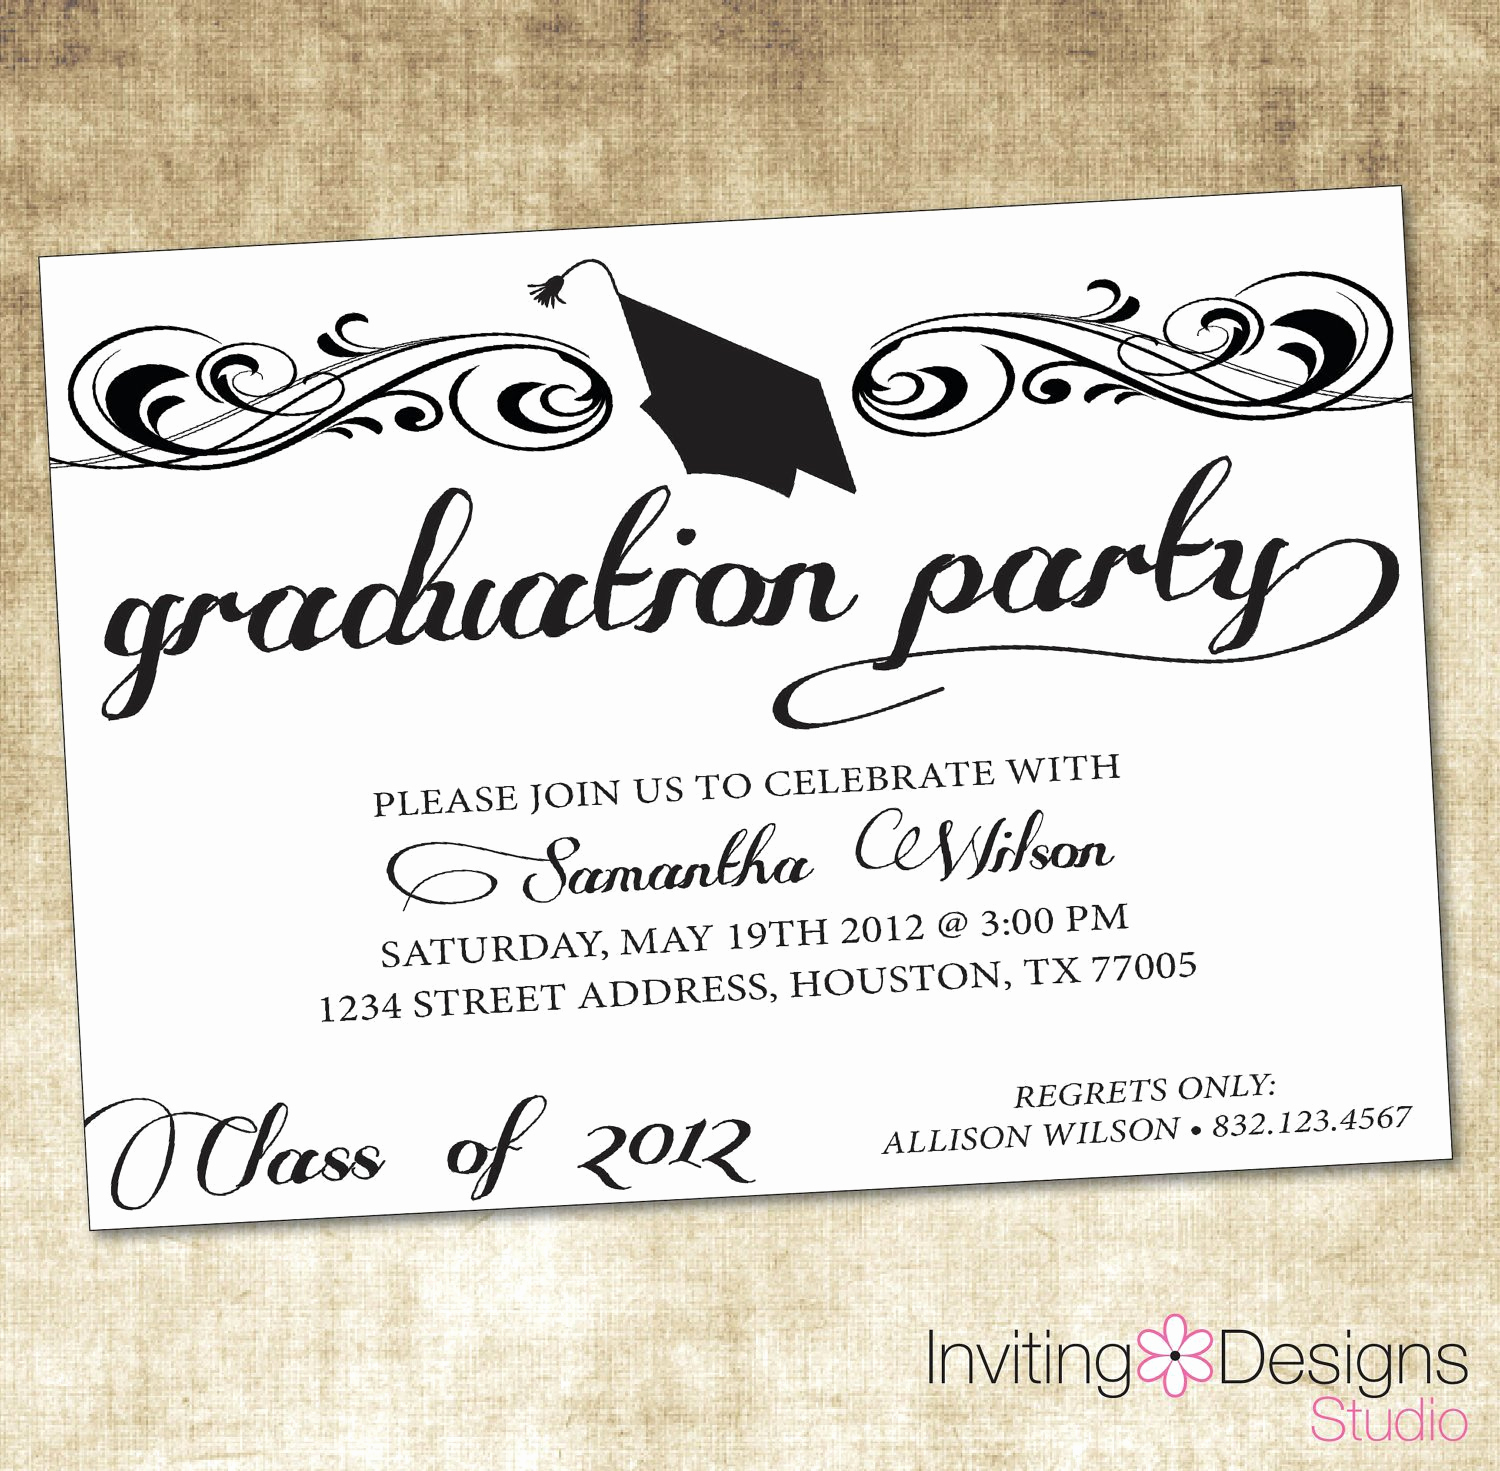 Graduation Party Invitation Template Free Best Of Free Graduation Invitation Templates Free Graduation